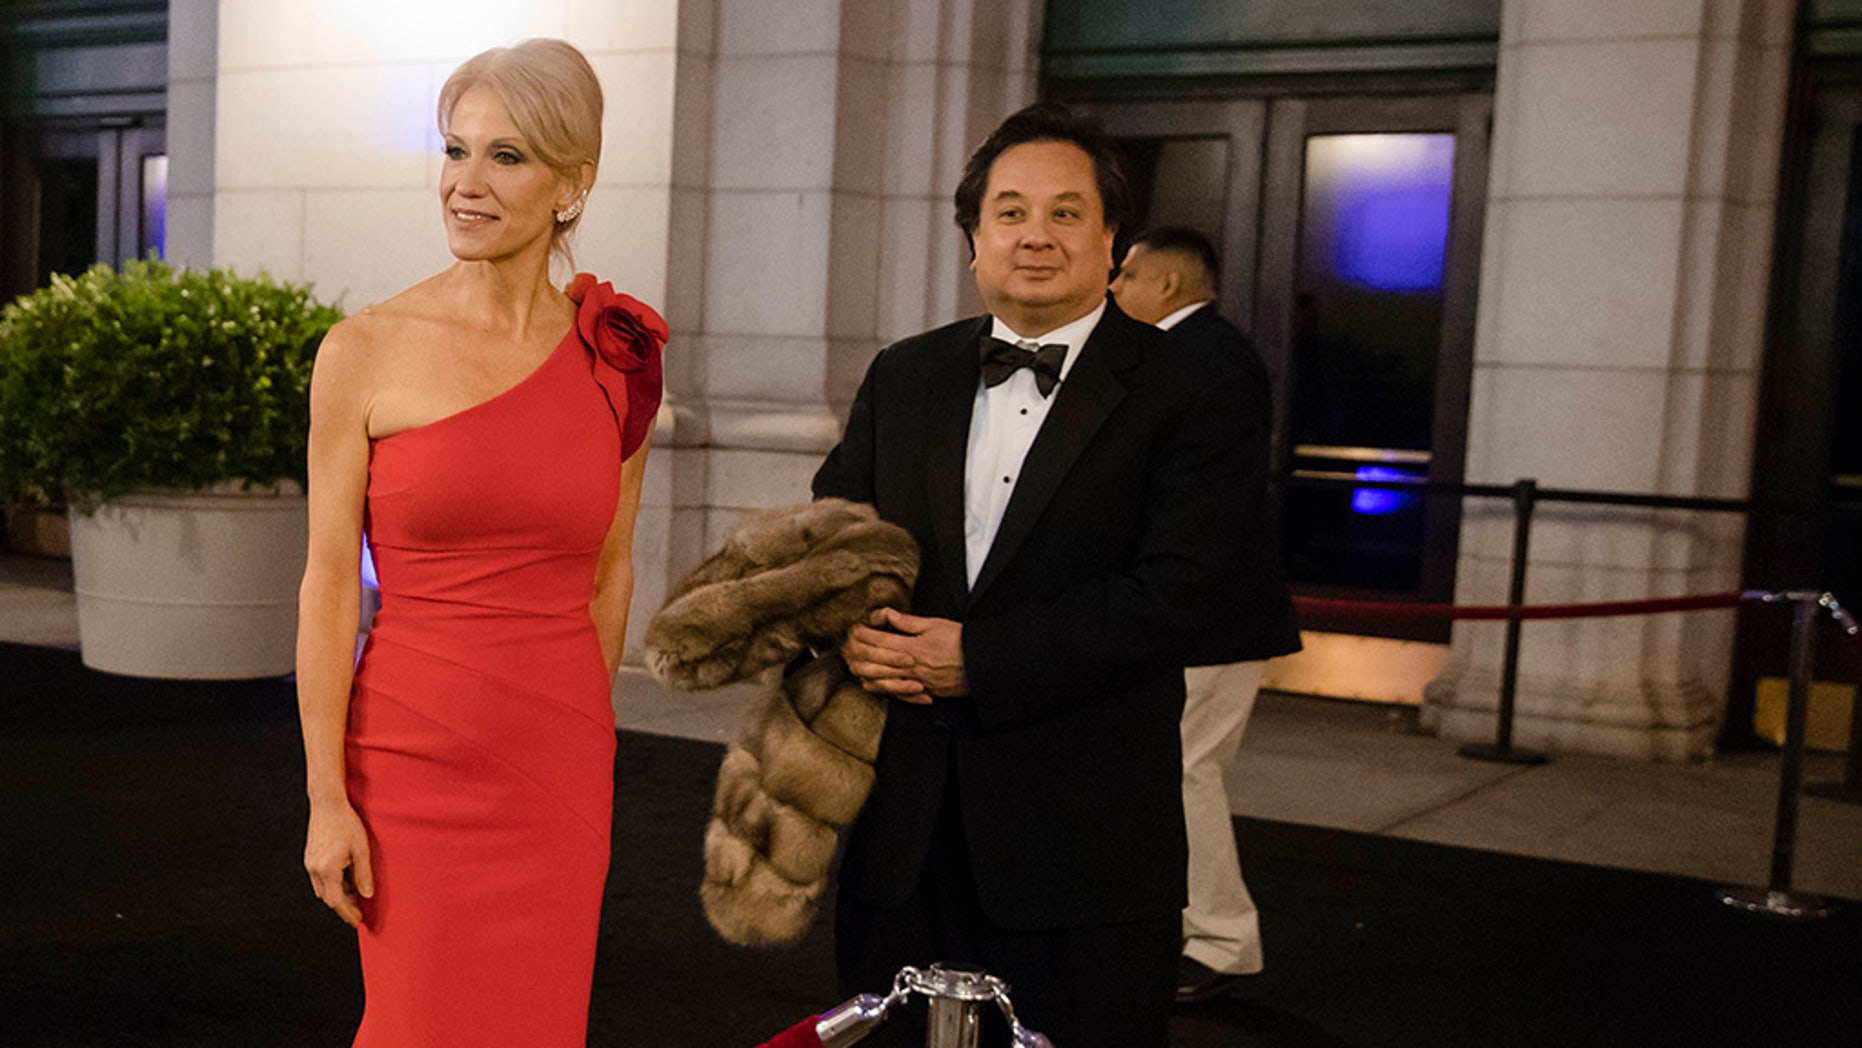 Kellyanne and George Conway, shown at a Washington dinner in this Jan. 19, 2017 photo, are publicly at odds over President Trump these days. (AP Photo/Matt Rourke)